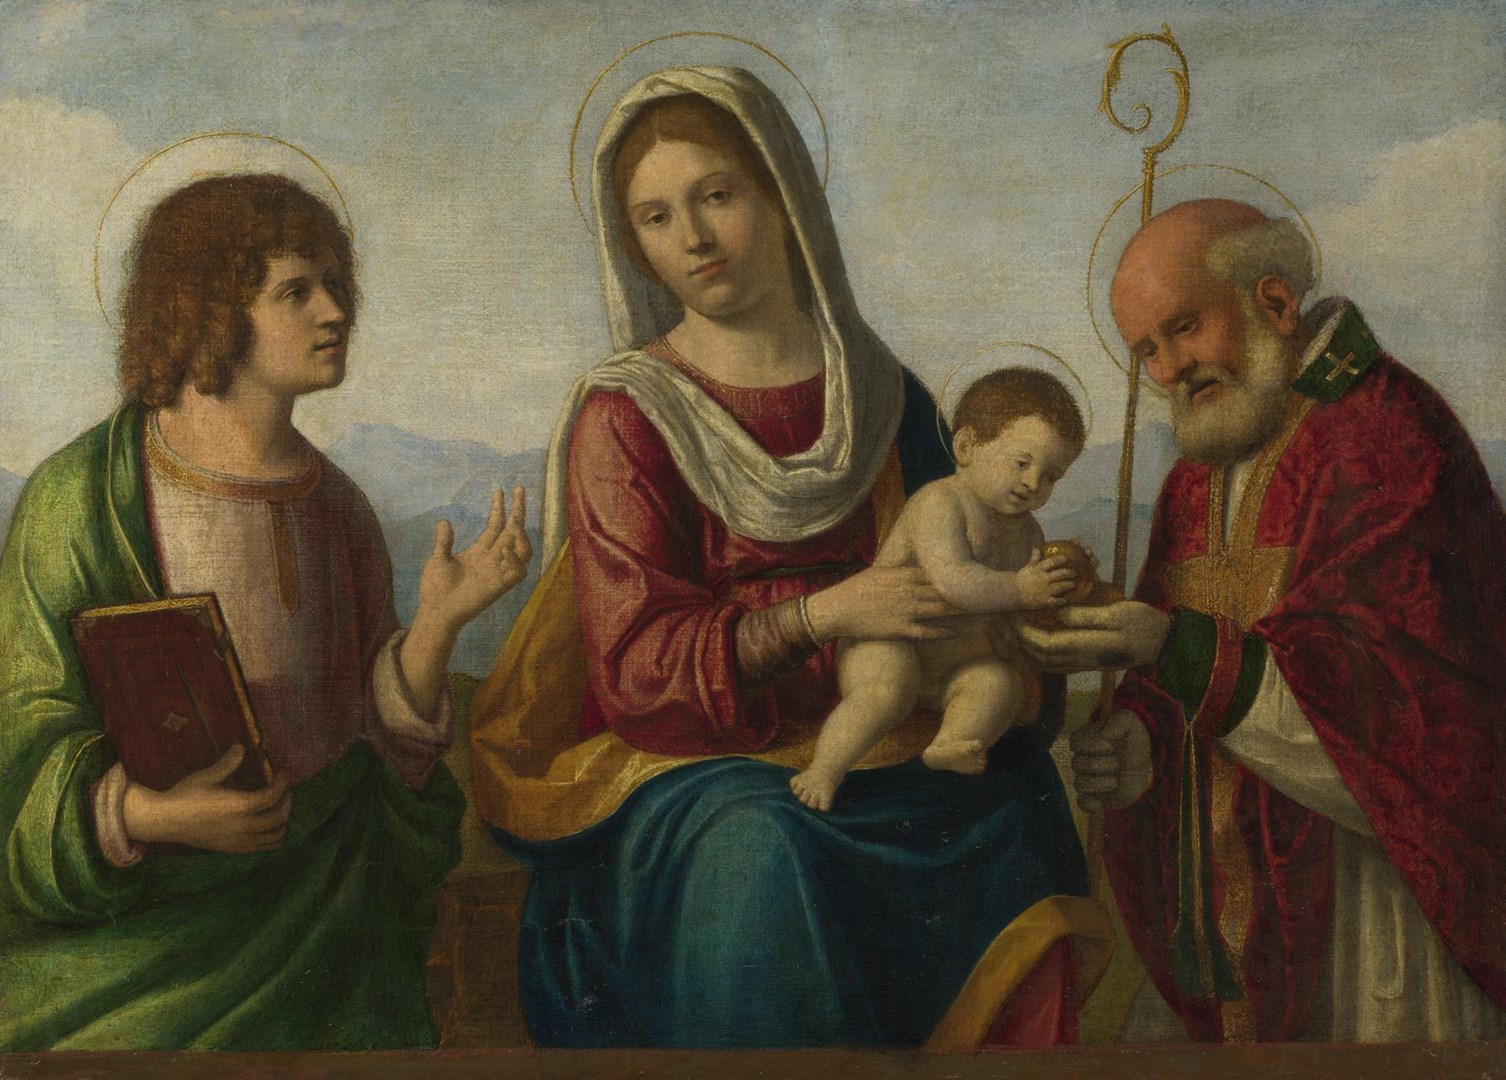 The Virgin and Child with Saints by Probably by Giovanni Battista Cima da Conegliano